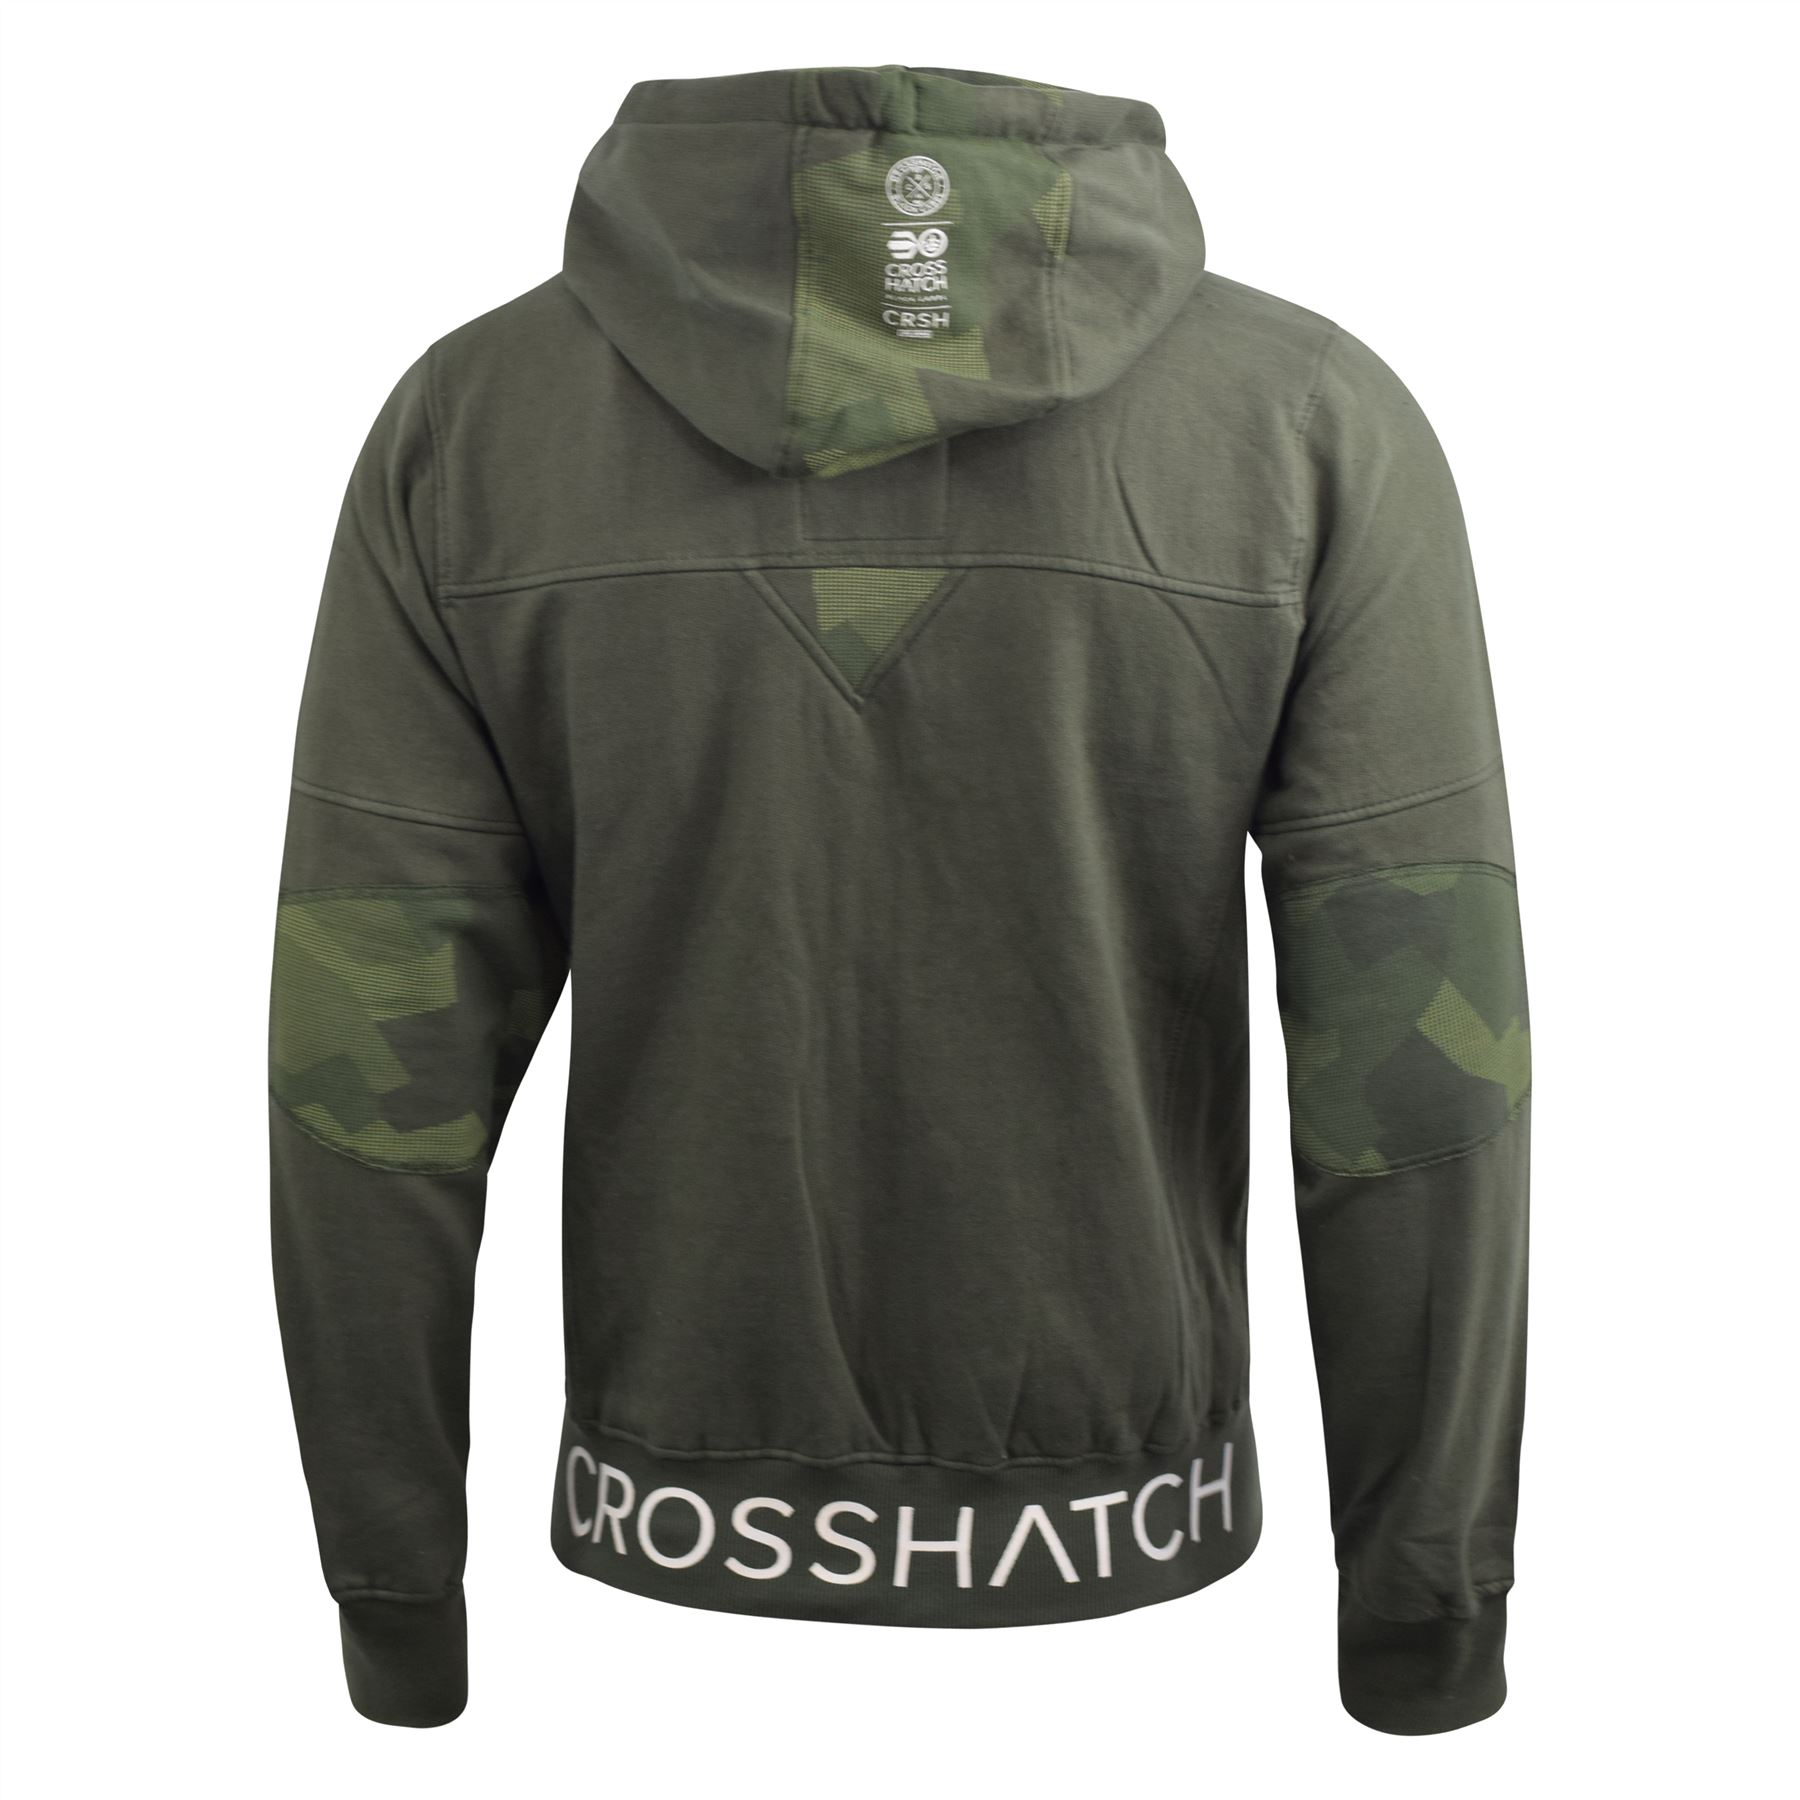 Mens-Hoodie-Crosshatch-Full-Zip-Sweatshirt-Hooded-Jumper-Top-Pullover-Radzim thumbnail 4